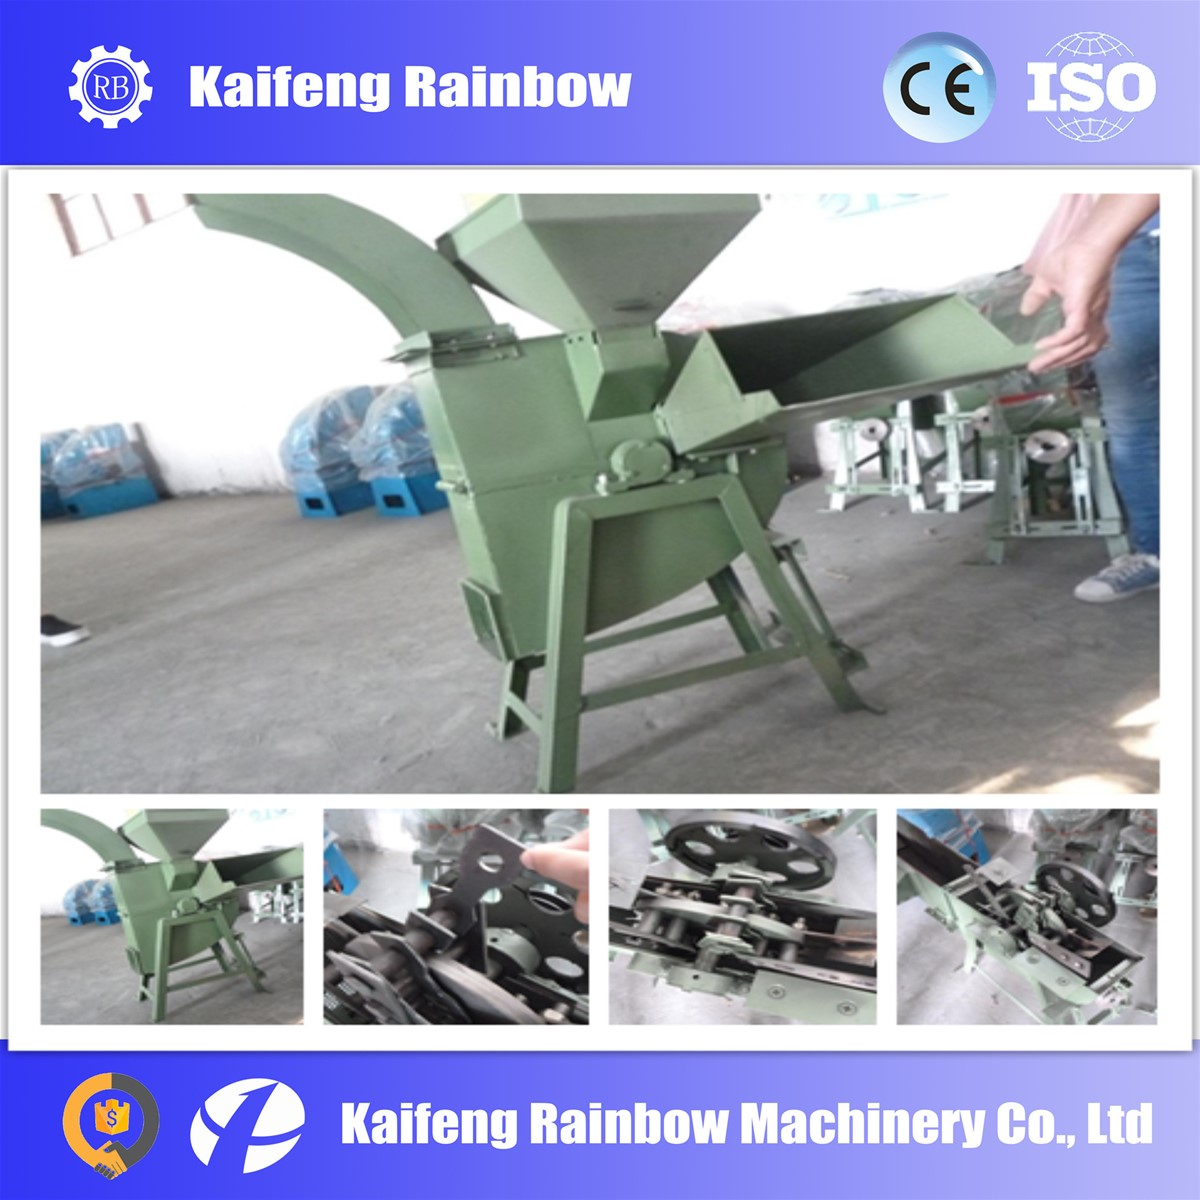 blade electrical Ensilage crushing machine for farm